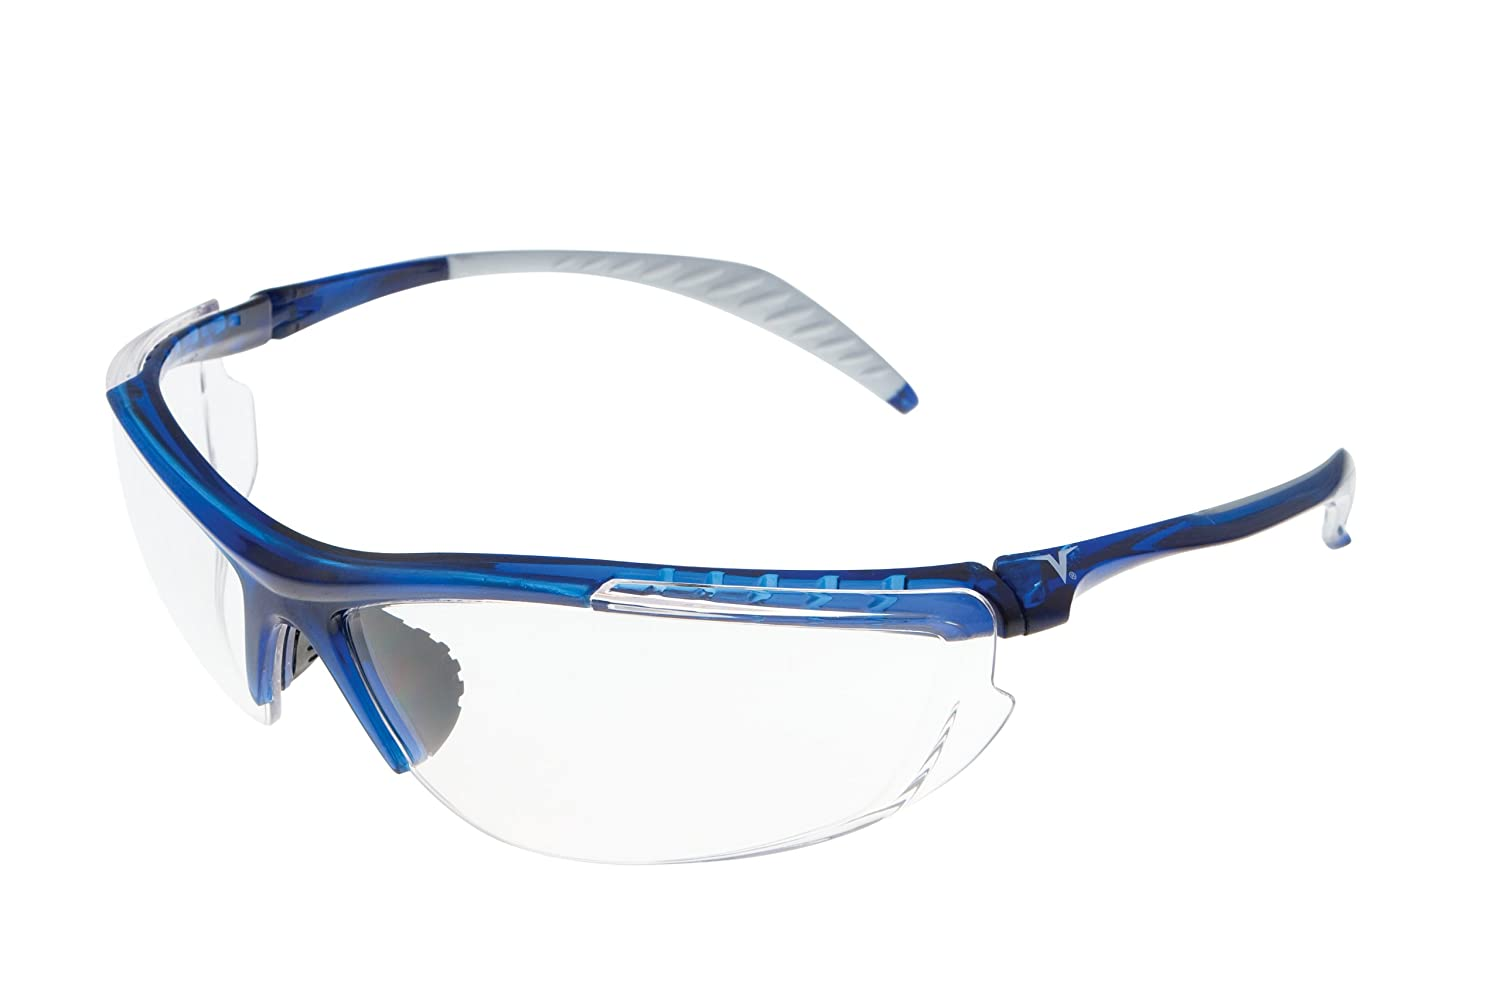 Sellstrom 70301 Dyno-Mites Kid Series Small Red White and Blue Frame Clear Lens Protective Eyewear with Adjustable Temples (Pack of 12) by Sellstrom B005I4G6ZG